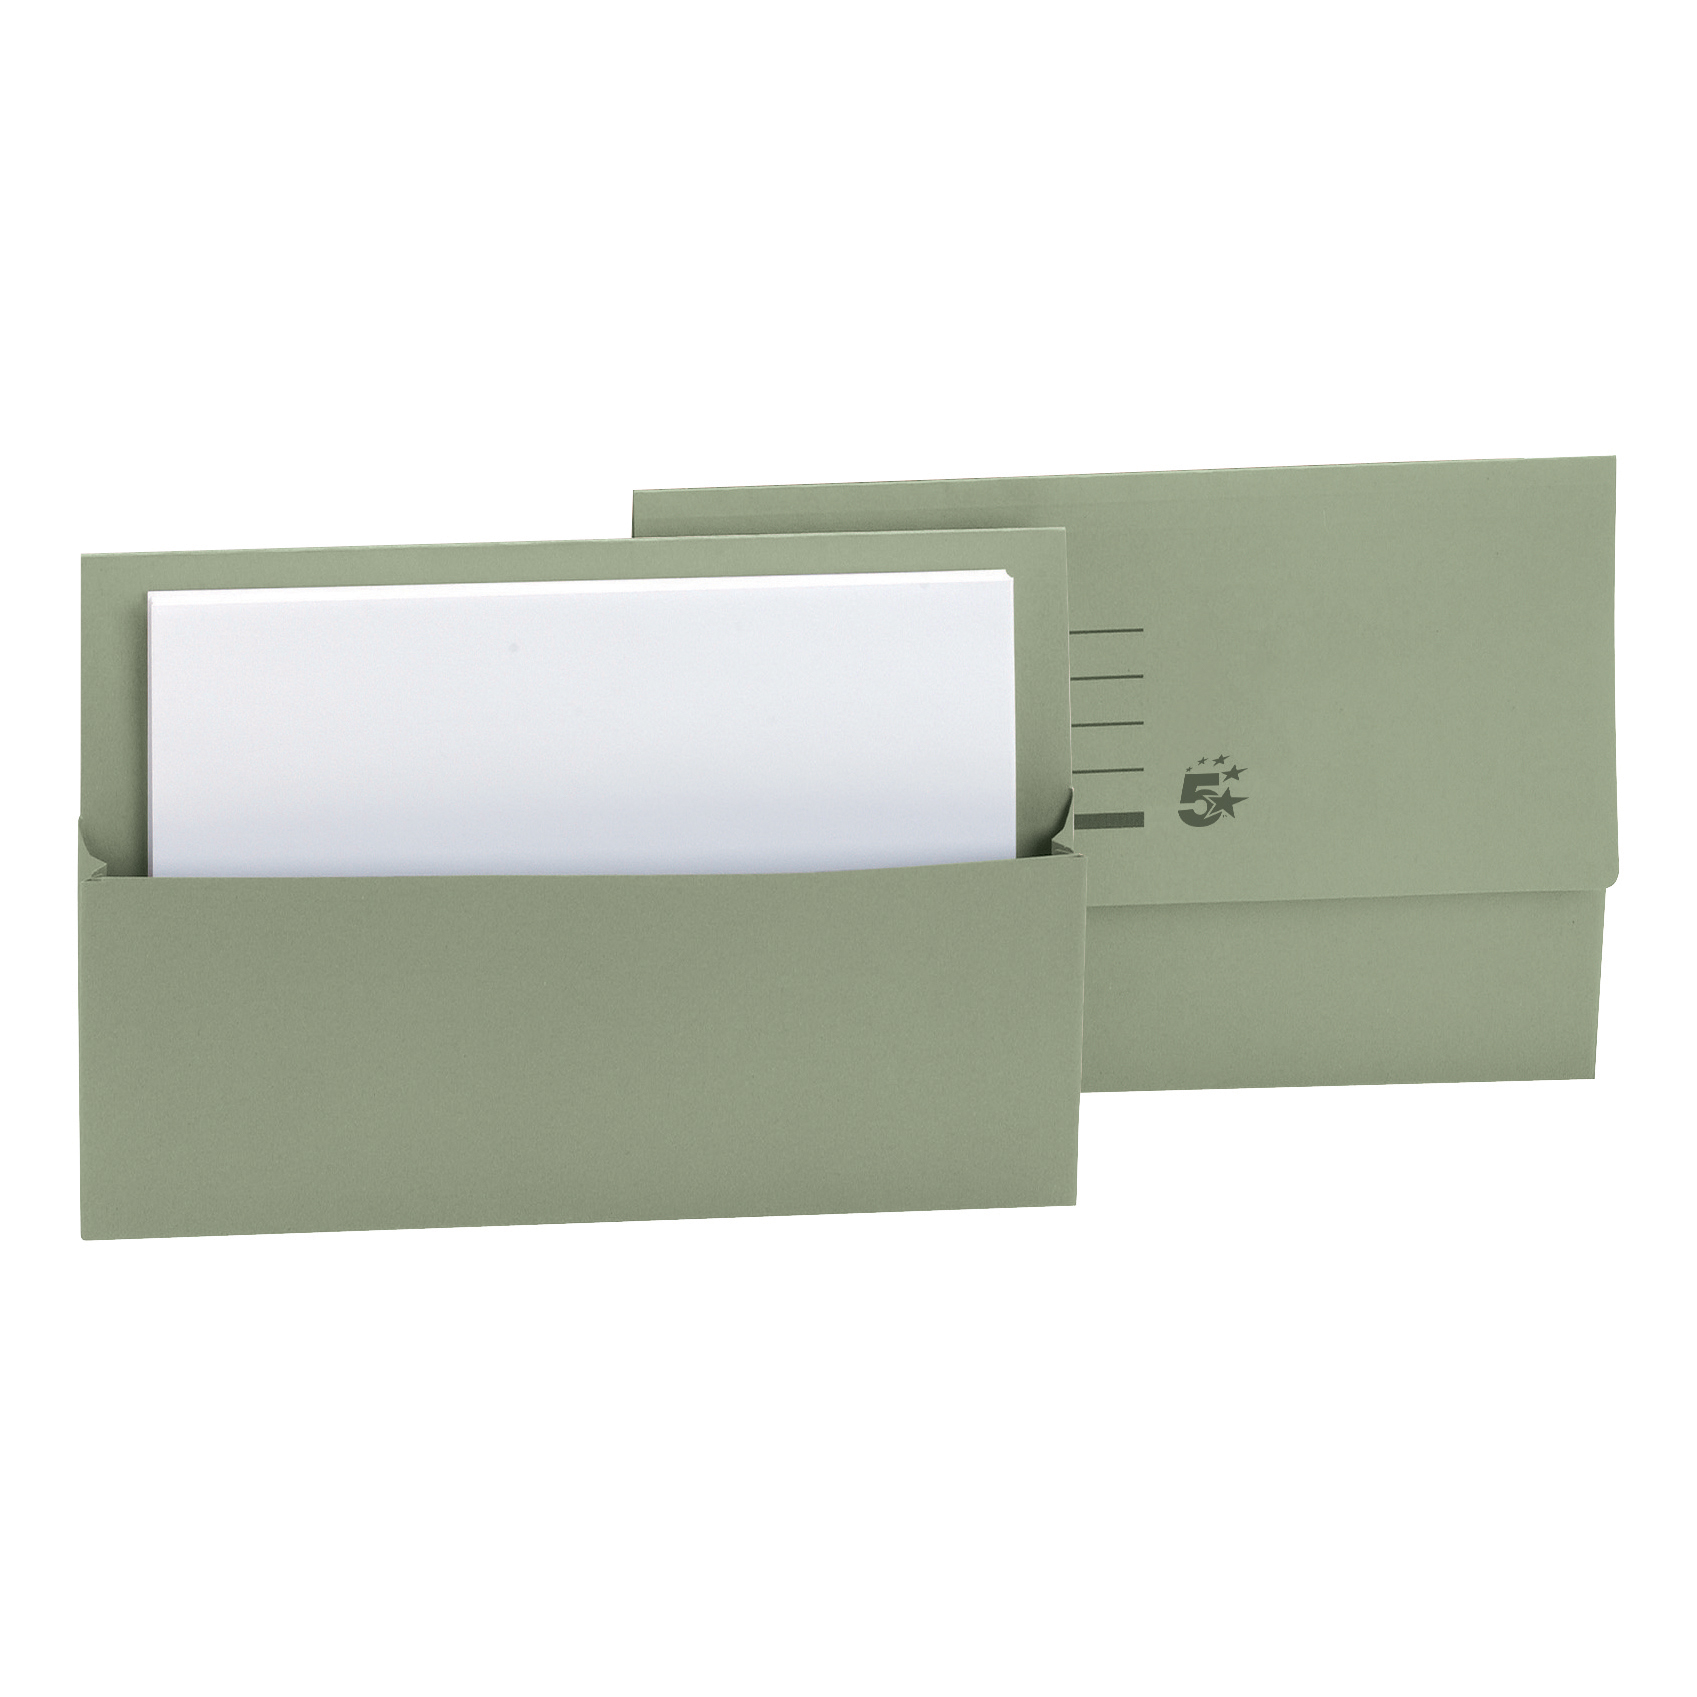 5 Star Office Document Wallet Half Flap 250gsm Recycled Capacity 32mm Foolscap Green [Pack 50]